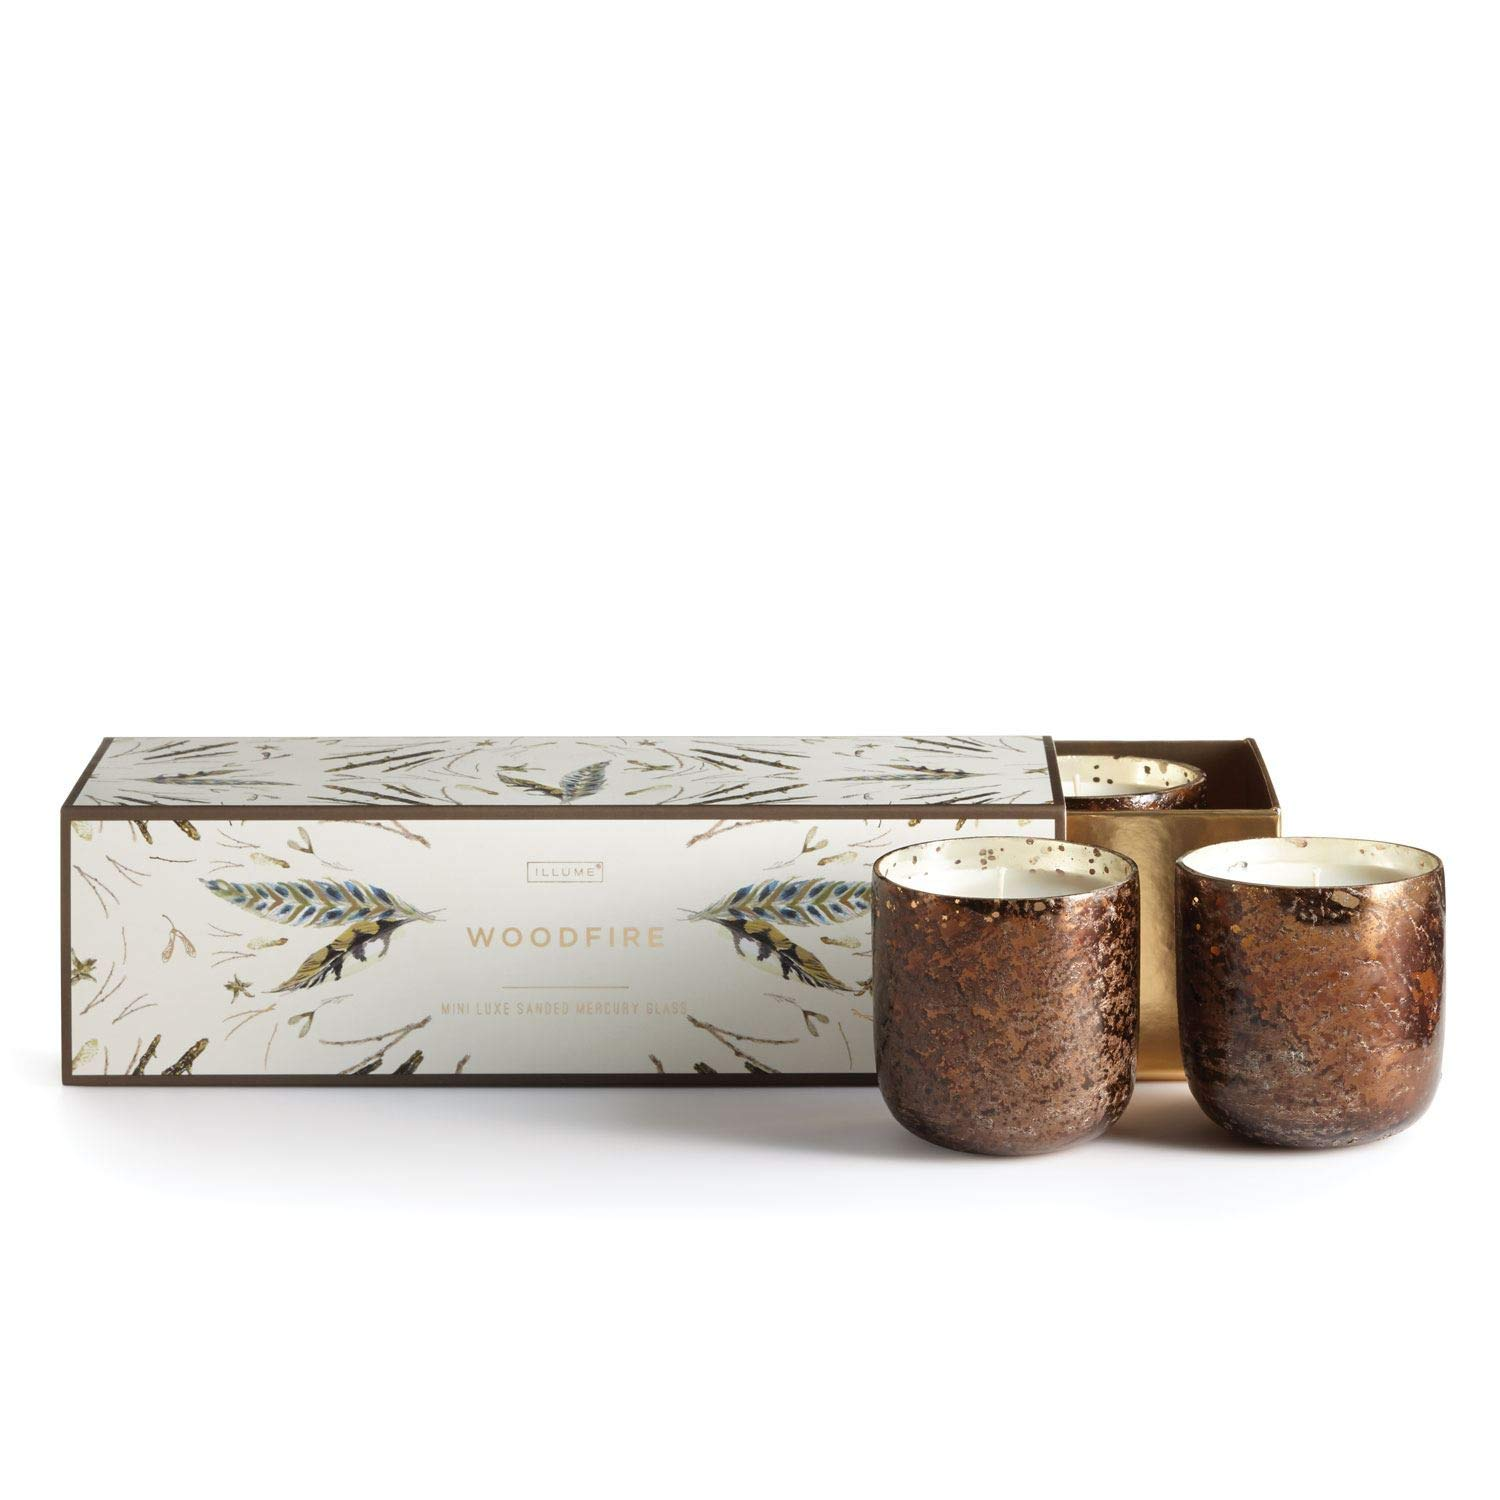 Illume Box 3 Mini Luxe Sanded Mercury Glass Votives (Woodfire) by Illume